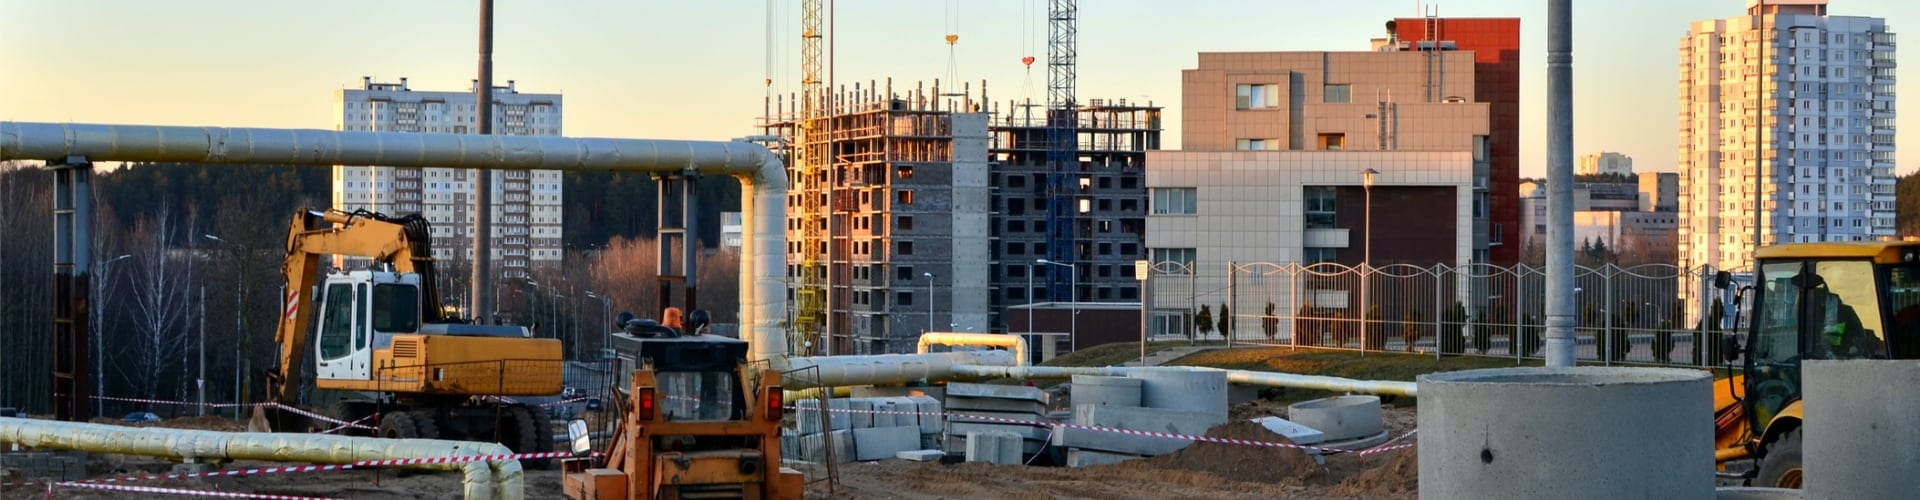 Health and Safety Plans (HASP's) for Complex Construction Projects | Getting Back To Work